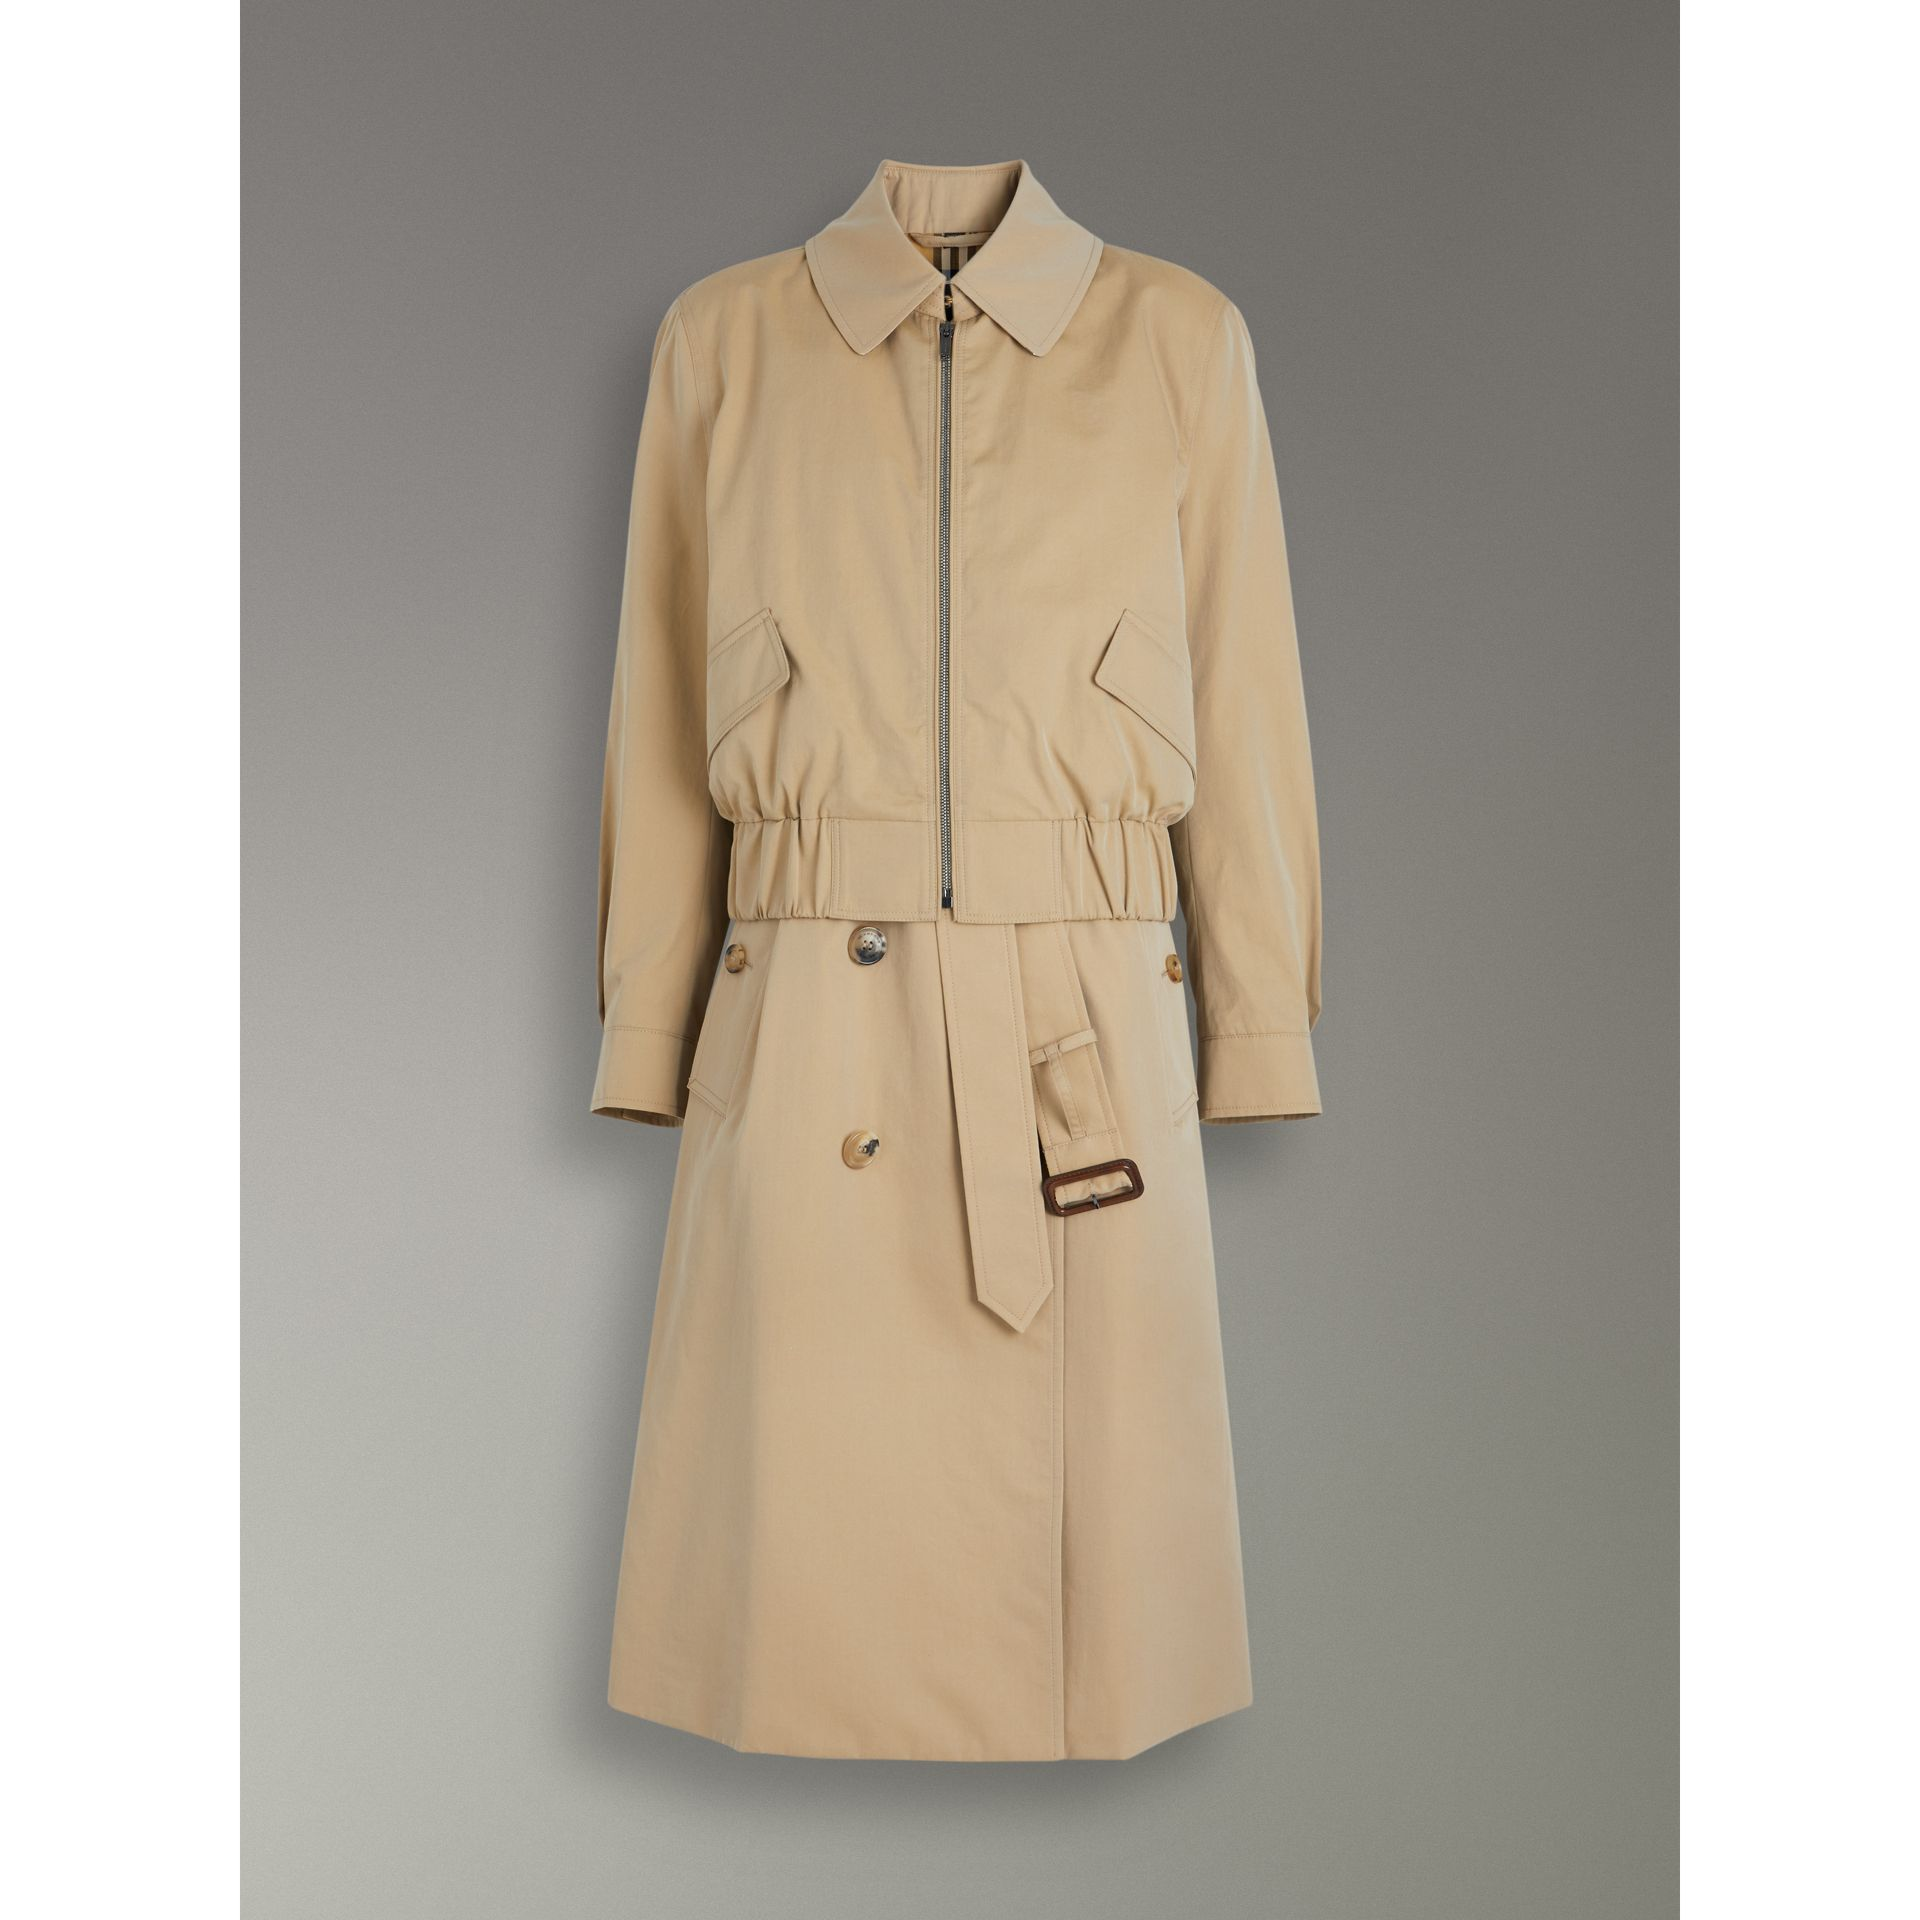 Trench Harrington reconstitué en gabardine tropicale (Miel) - Femme | Burberry - photo de la galerie 3